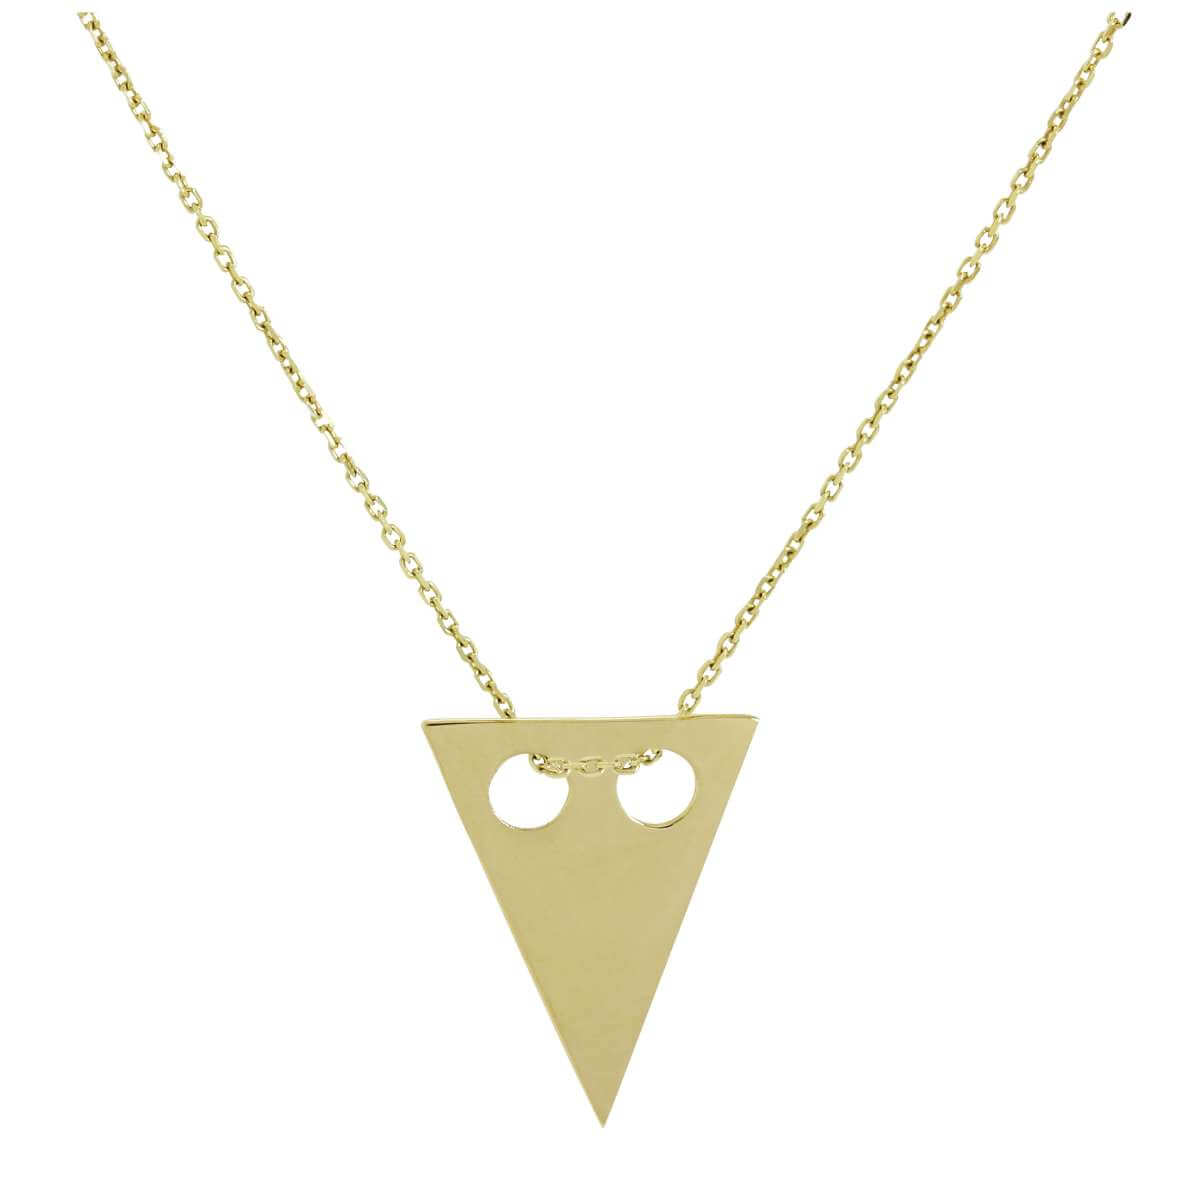 9ct Gold Engravable Flat Triangle Pendant Necklace 16 - 20 Inches